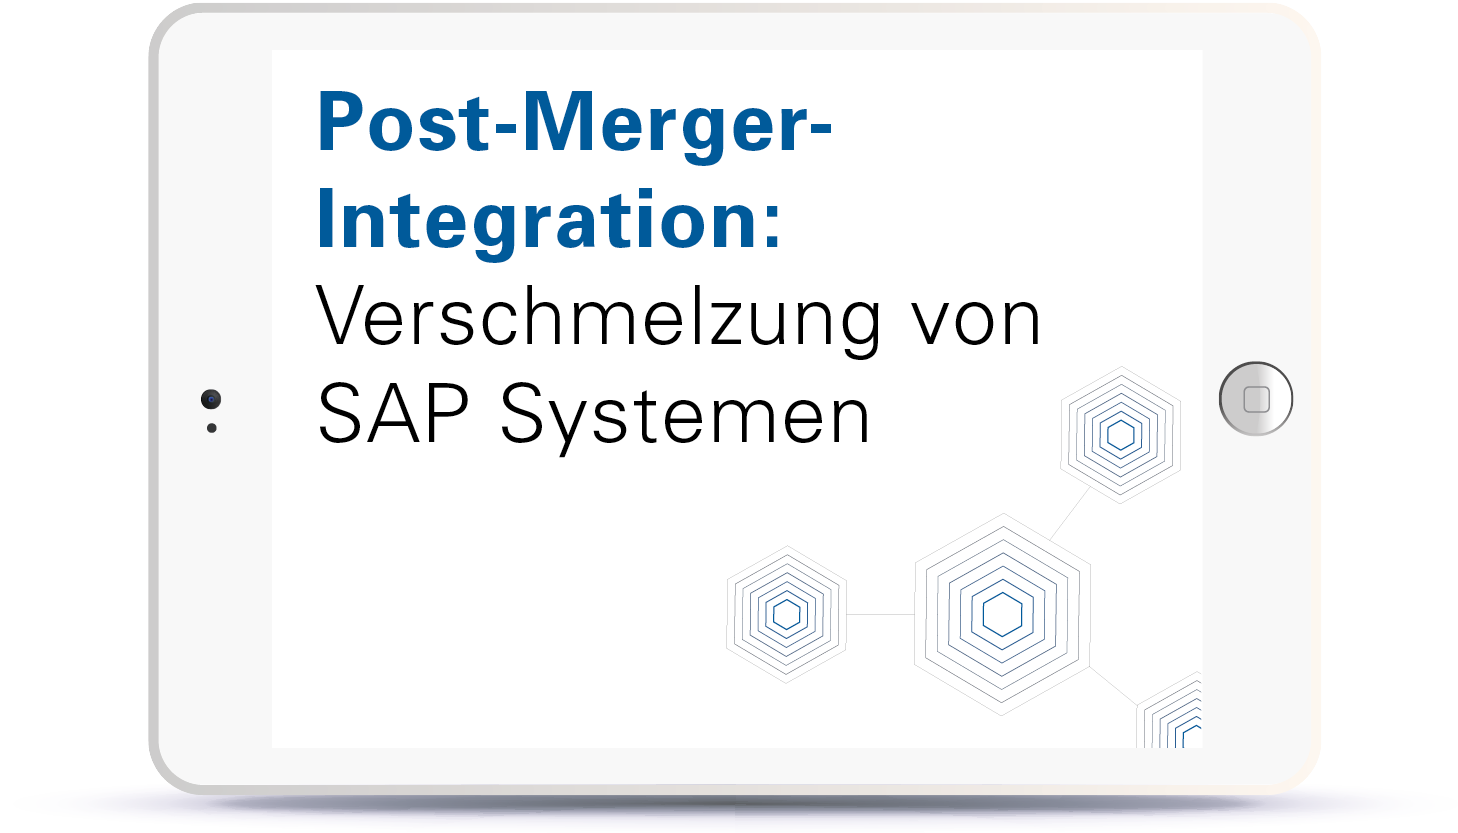 WEBINAR: Post-Merger-Integration: Verschmelzung von SAP Systemen. Book